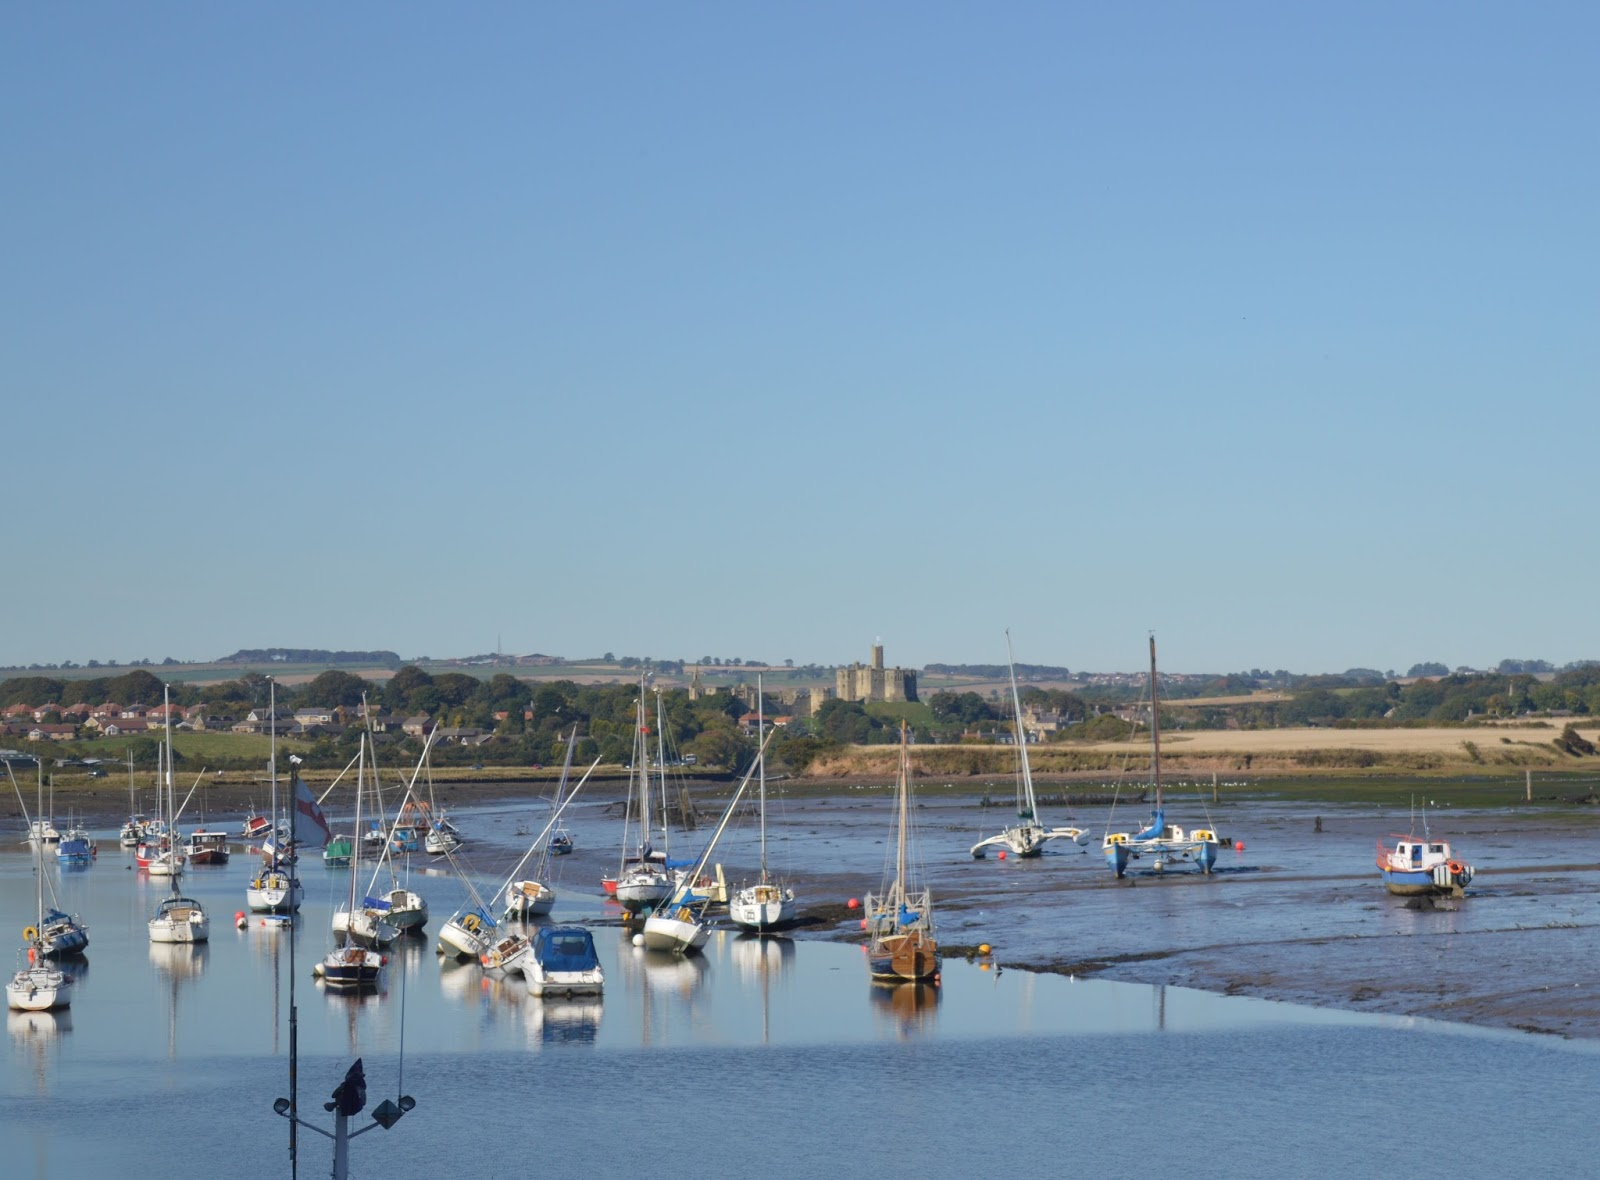 10+ Easy Coastal Walks in North East England  (less than 2 hours long) - Amble Harbour Walk